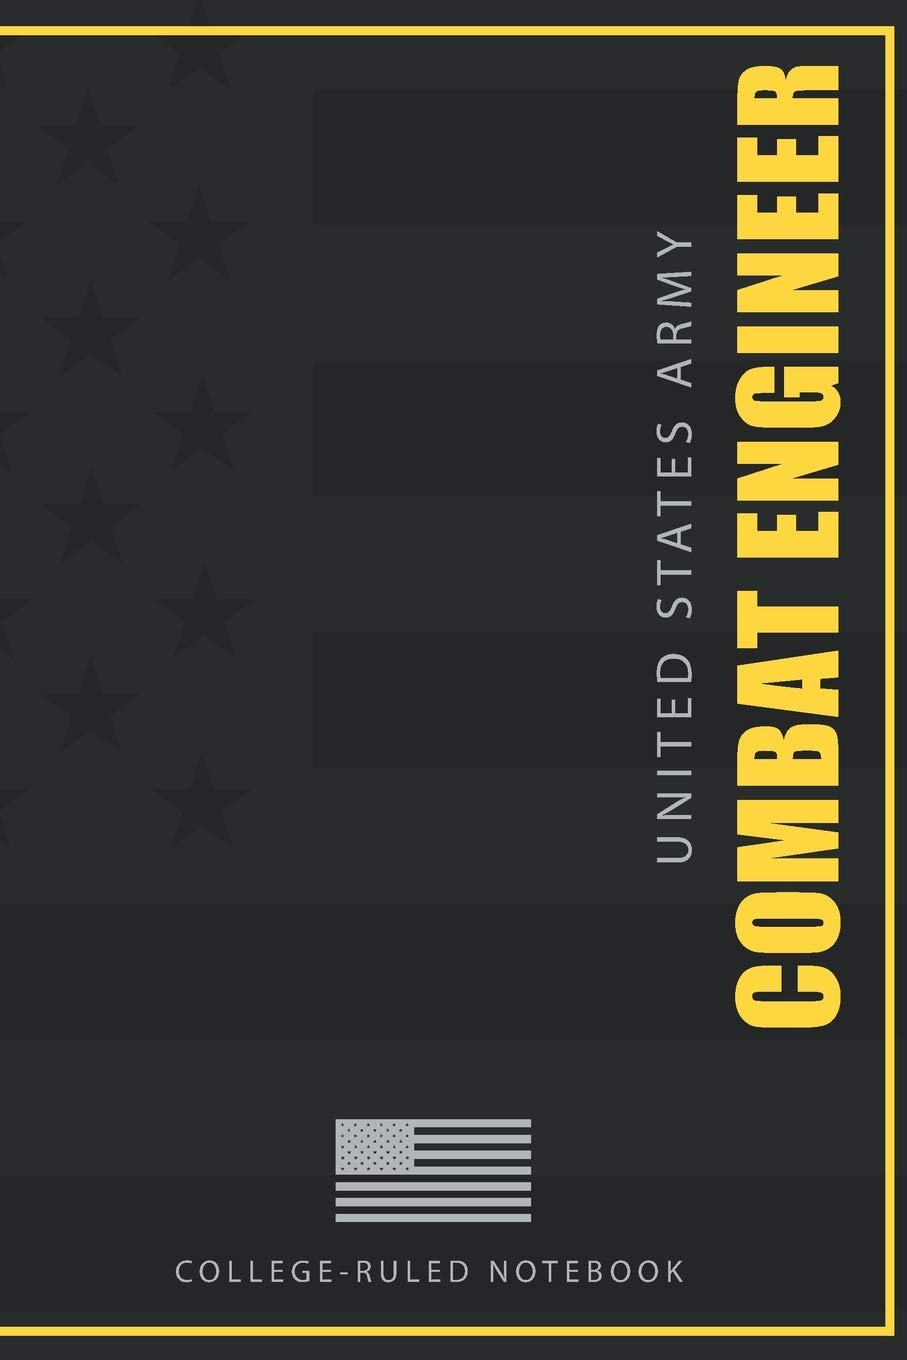 United States Army Combat Engineer College-Ruled Notebook: 120-page College-ruled notebook for active duty and retired U.S. Army Combat Engineer Veterans